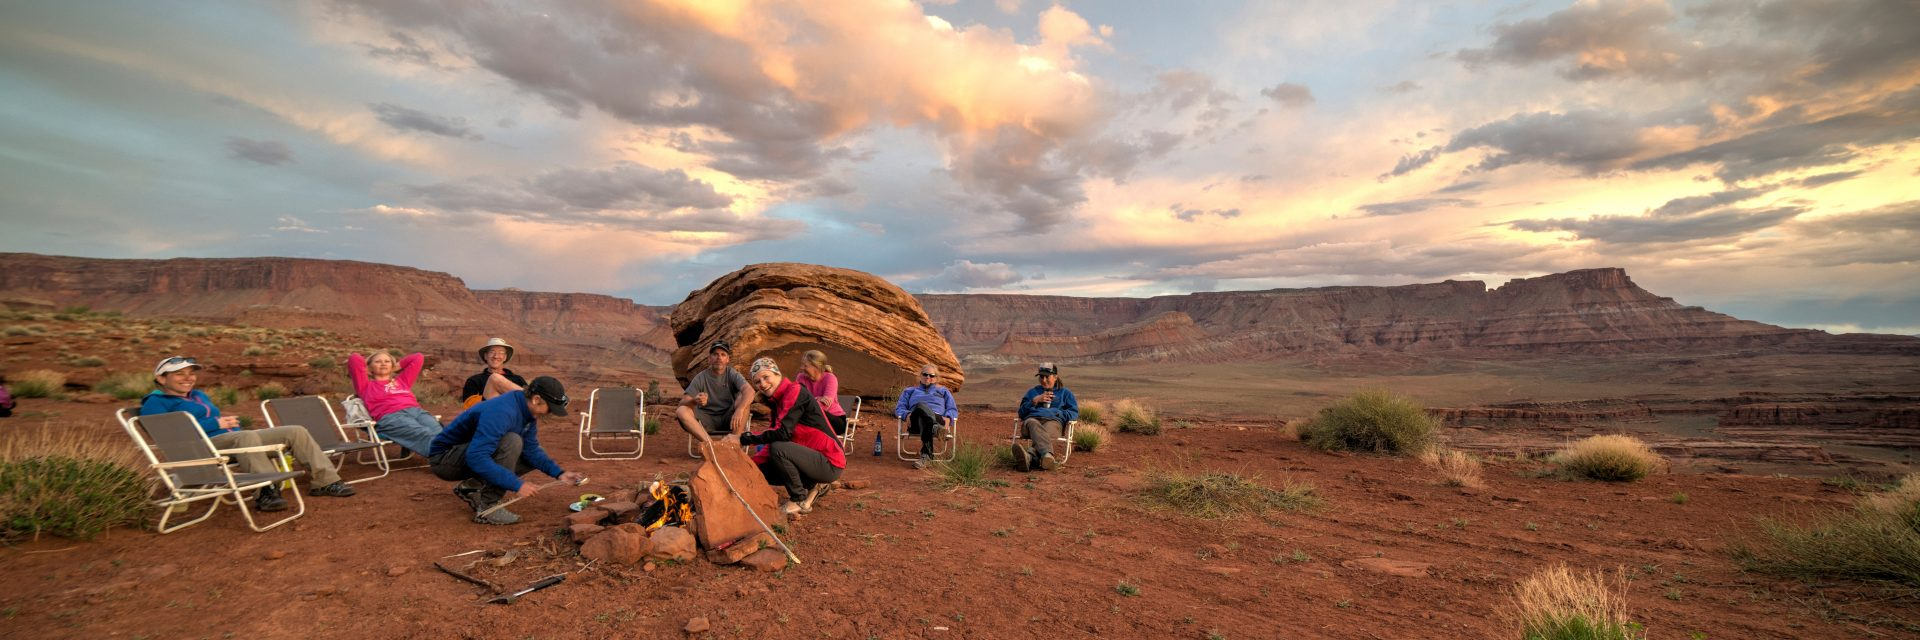 Mountain bikers enjoy an evening campfire above Lockhart Basin at the end of a day's ride on The Needles to Moab guided tour